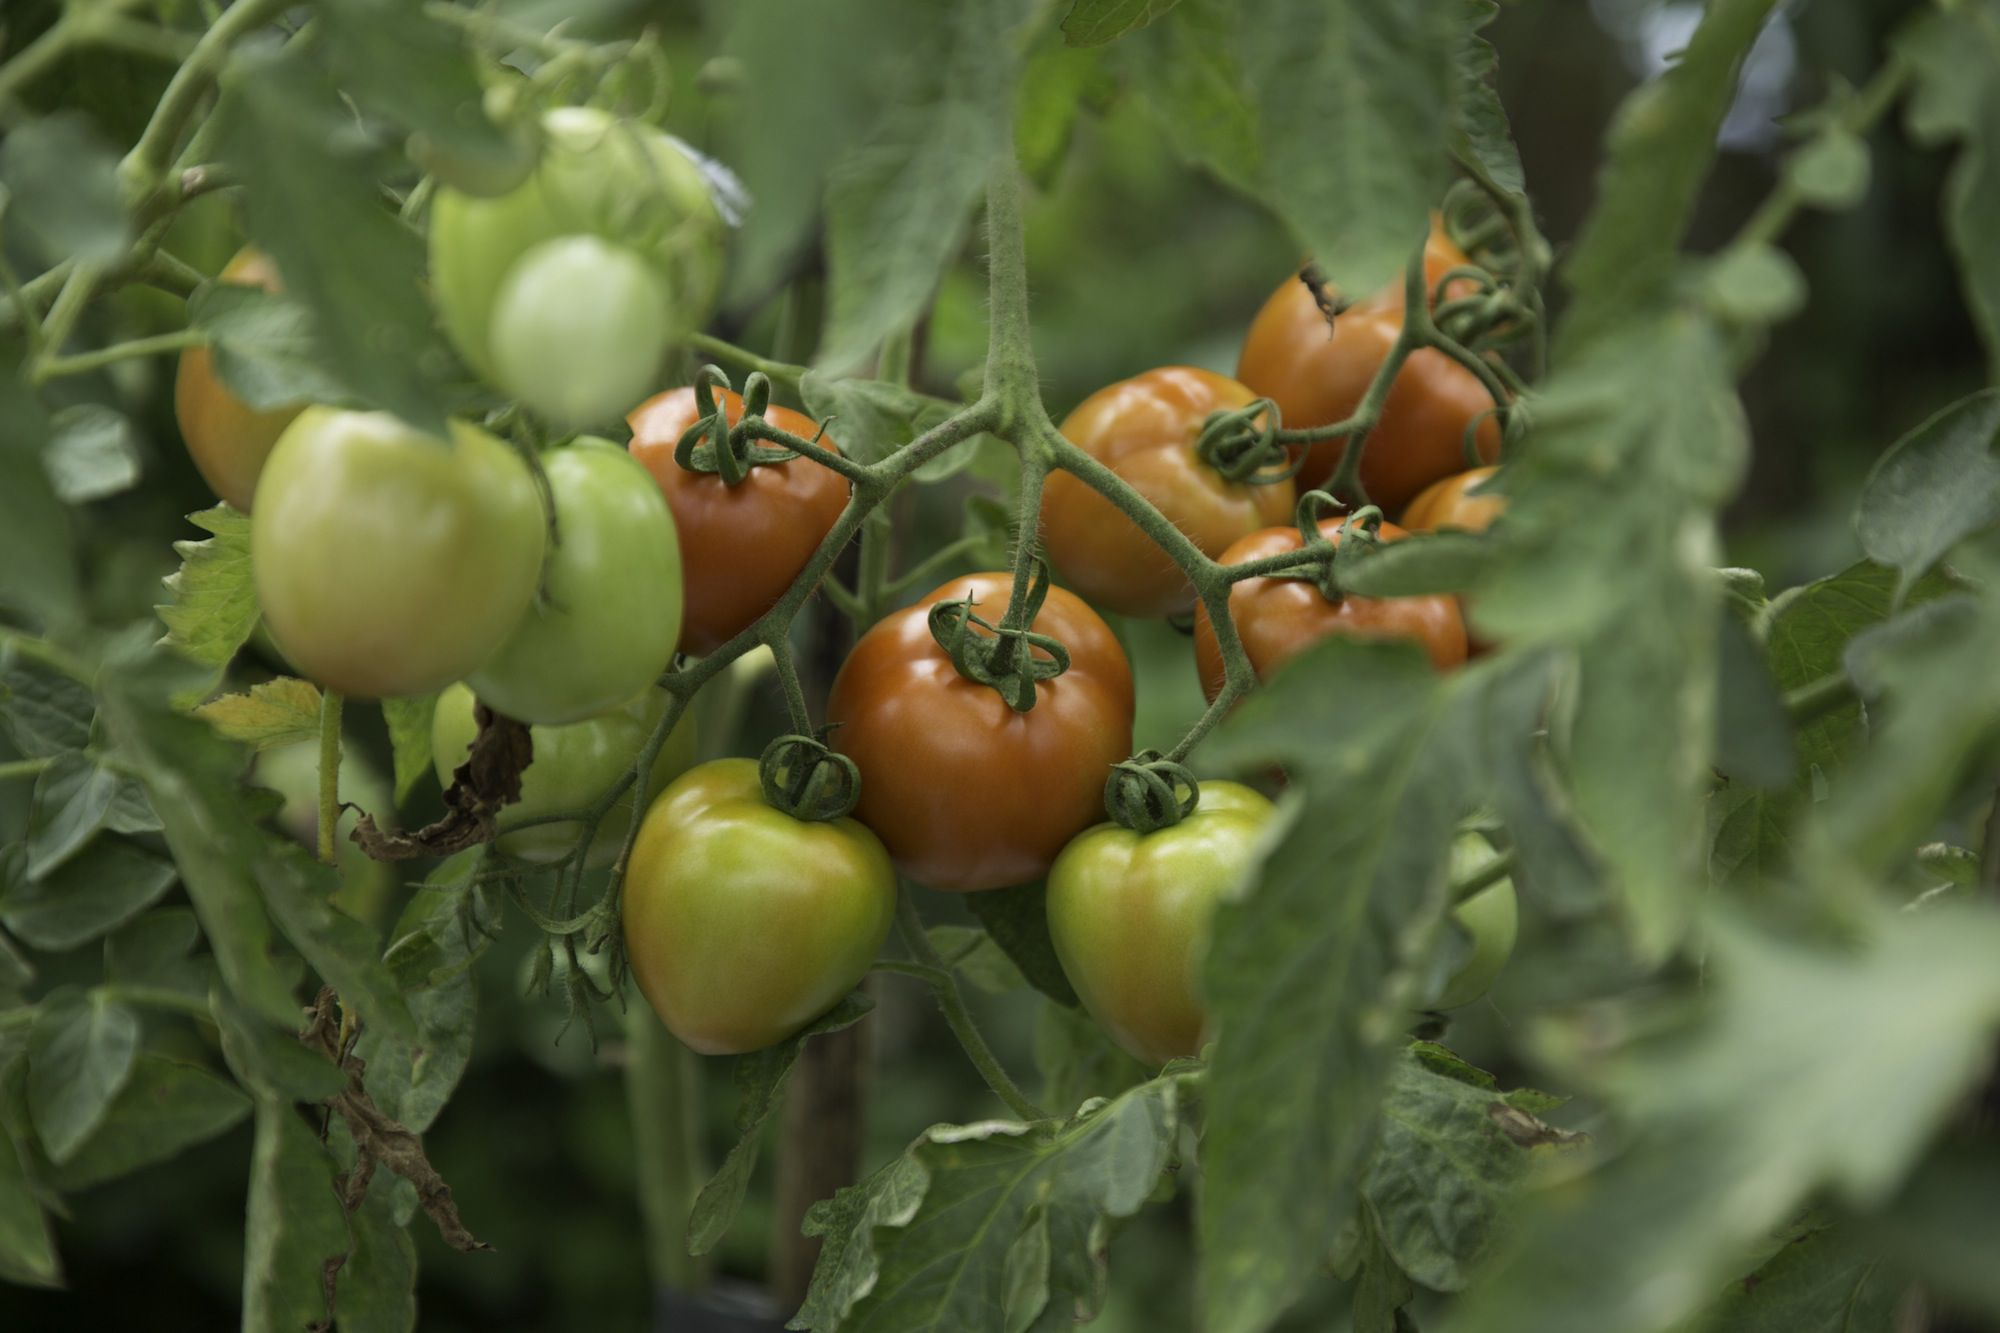 Pruning Tomato Plants in Pots